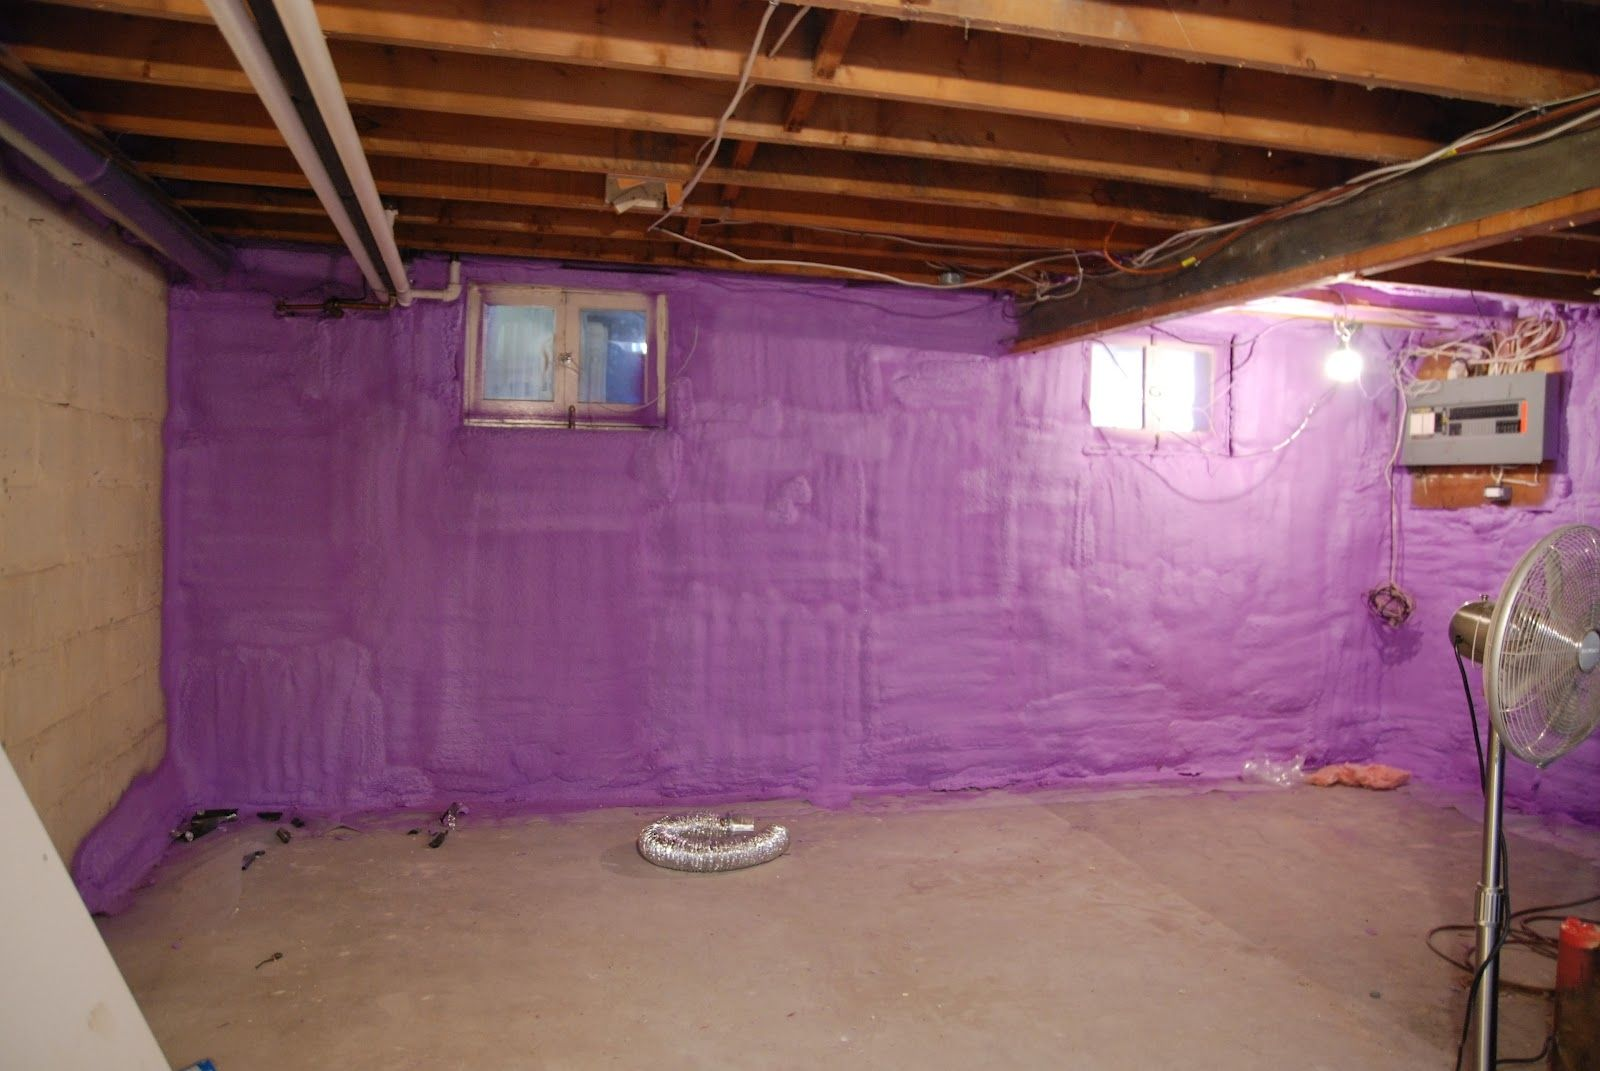 Spray Foam Insulation On Concrete Basement Walls Concrete Basement Walls Spray Foam Insulation Basement Walls